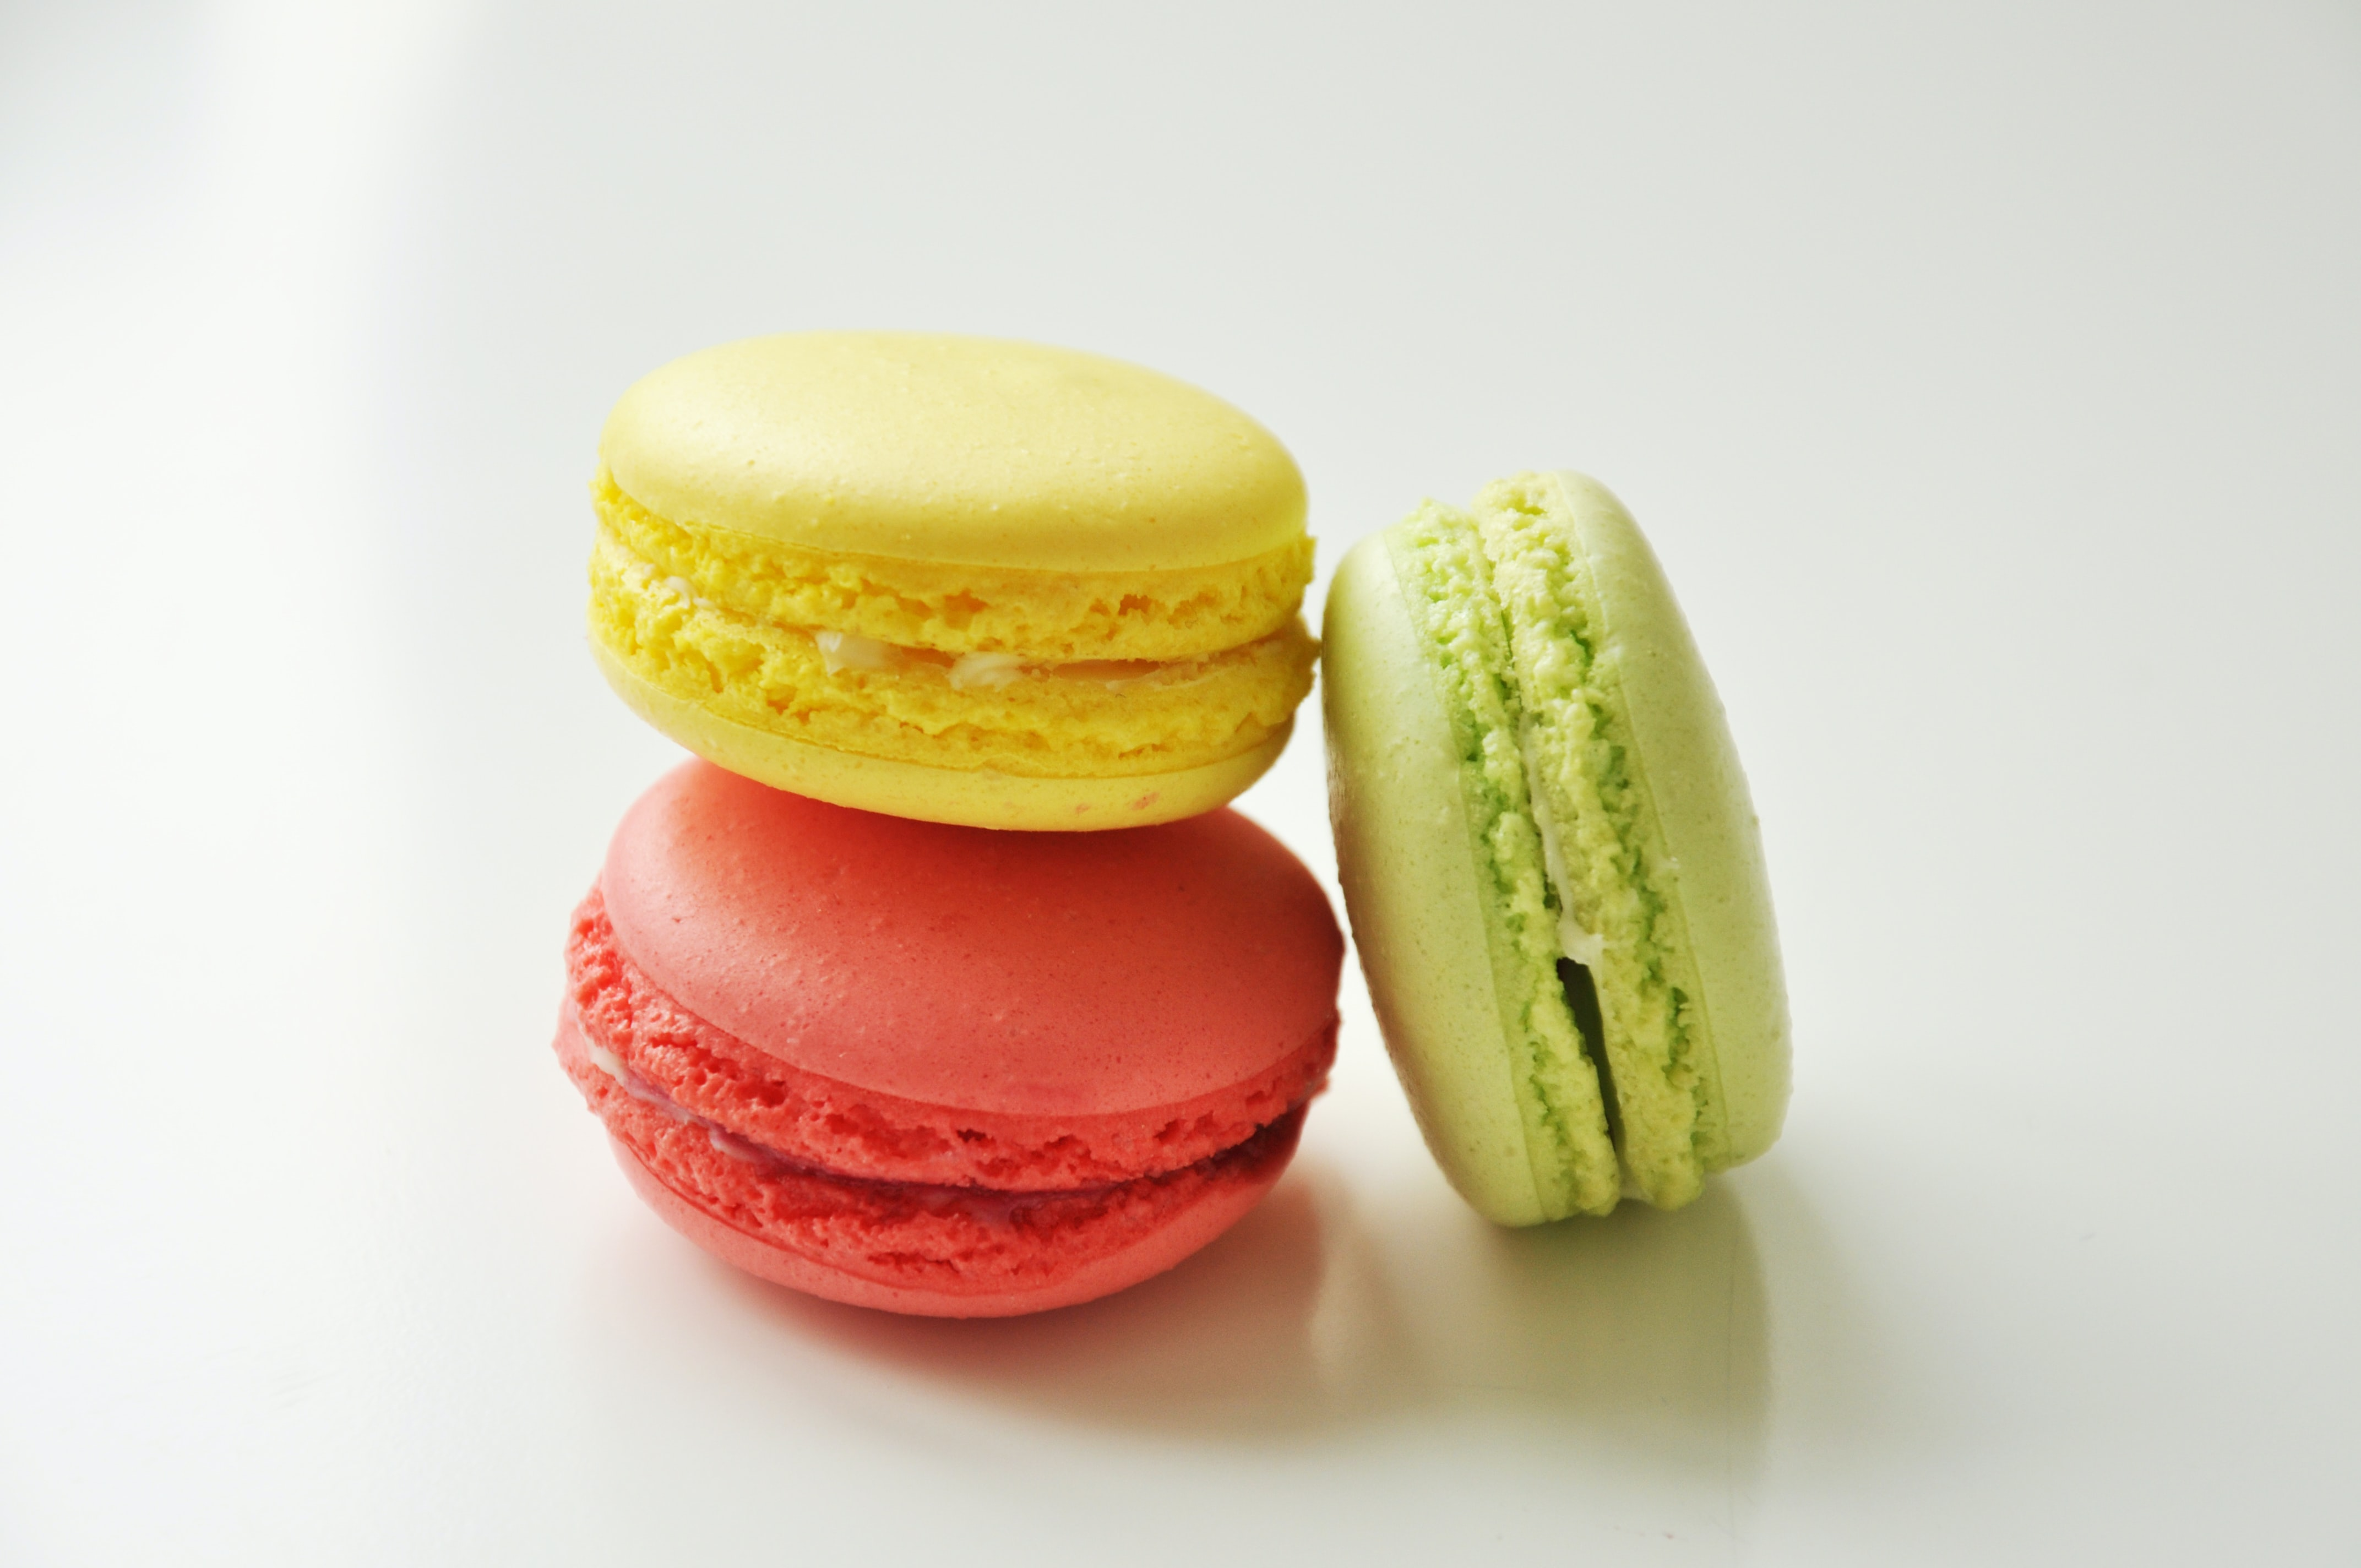 Three colorful French macarons for a tasty treat